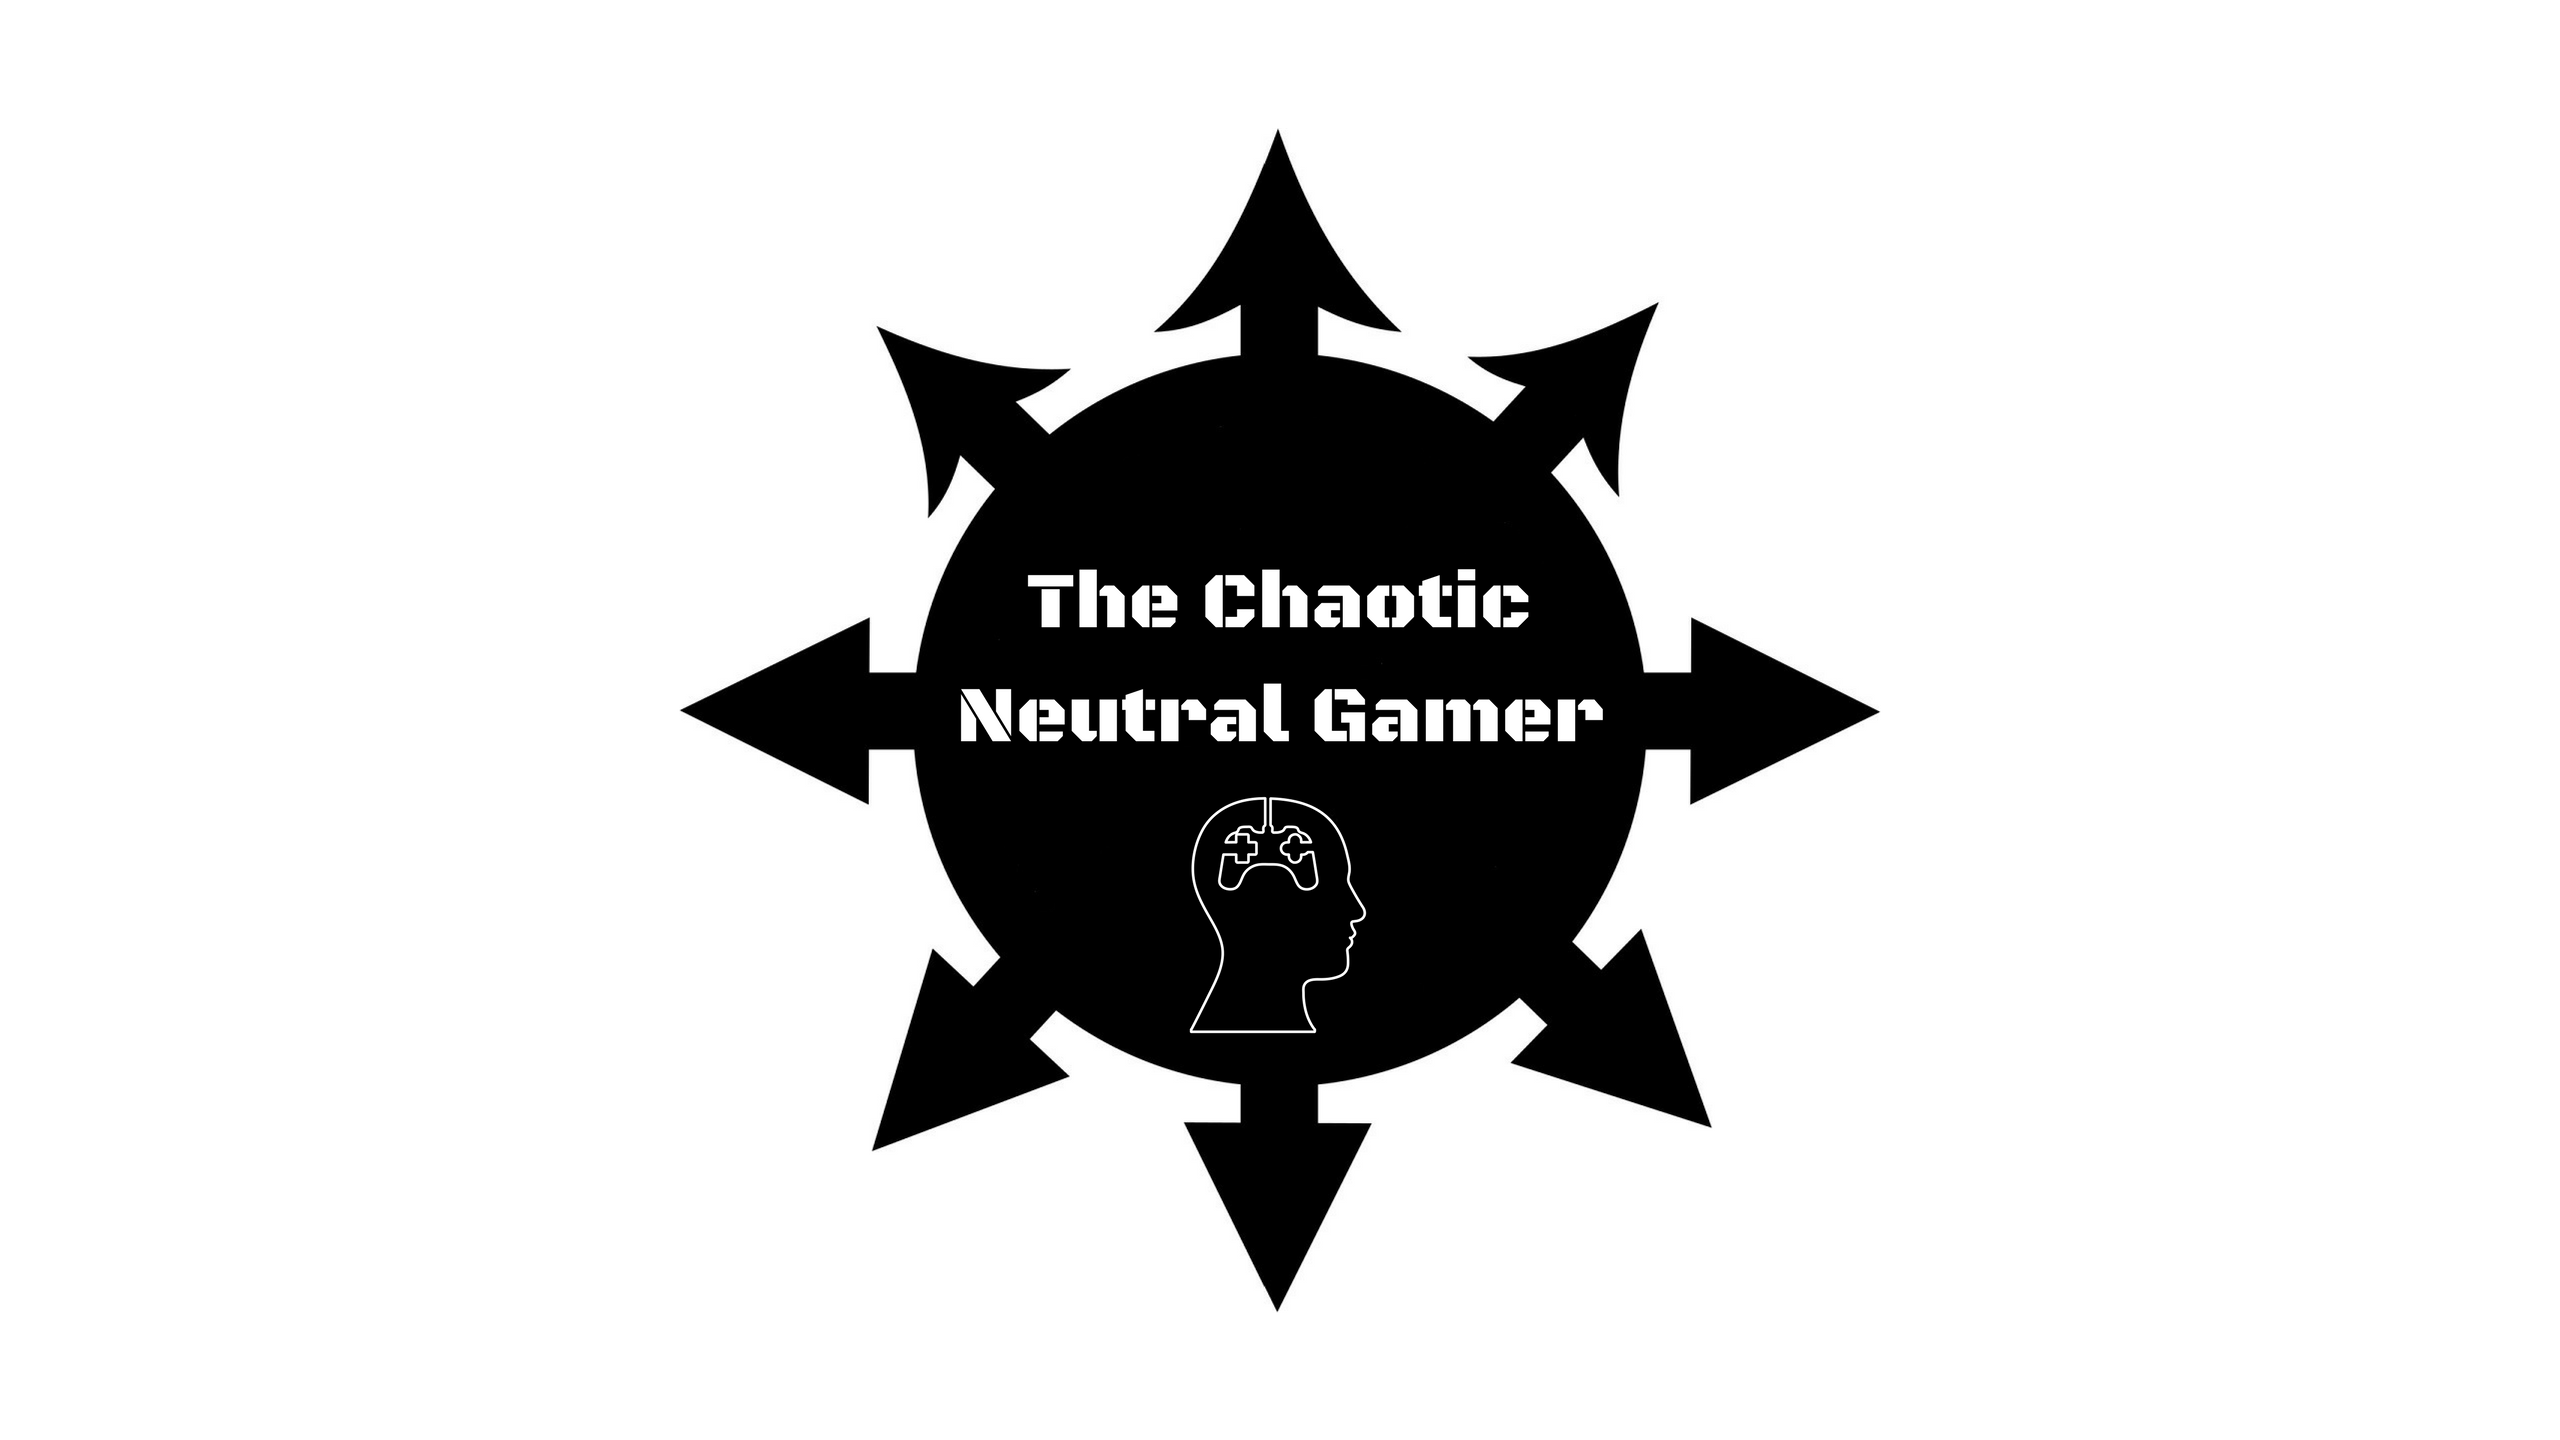 The Chaotic Neutral Gamer Profile Picture Thechaoticneutralgamer